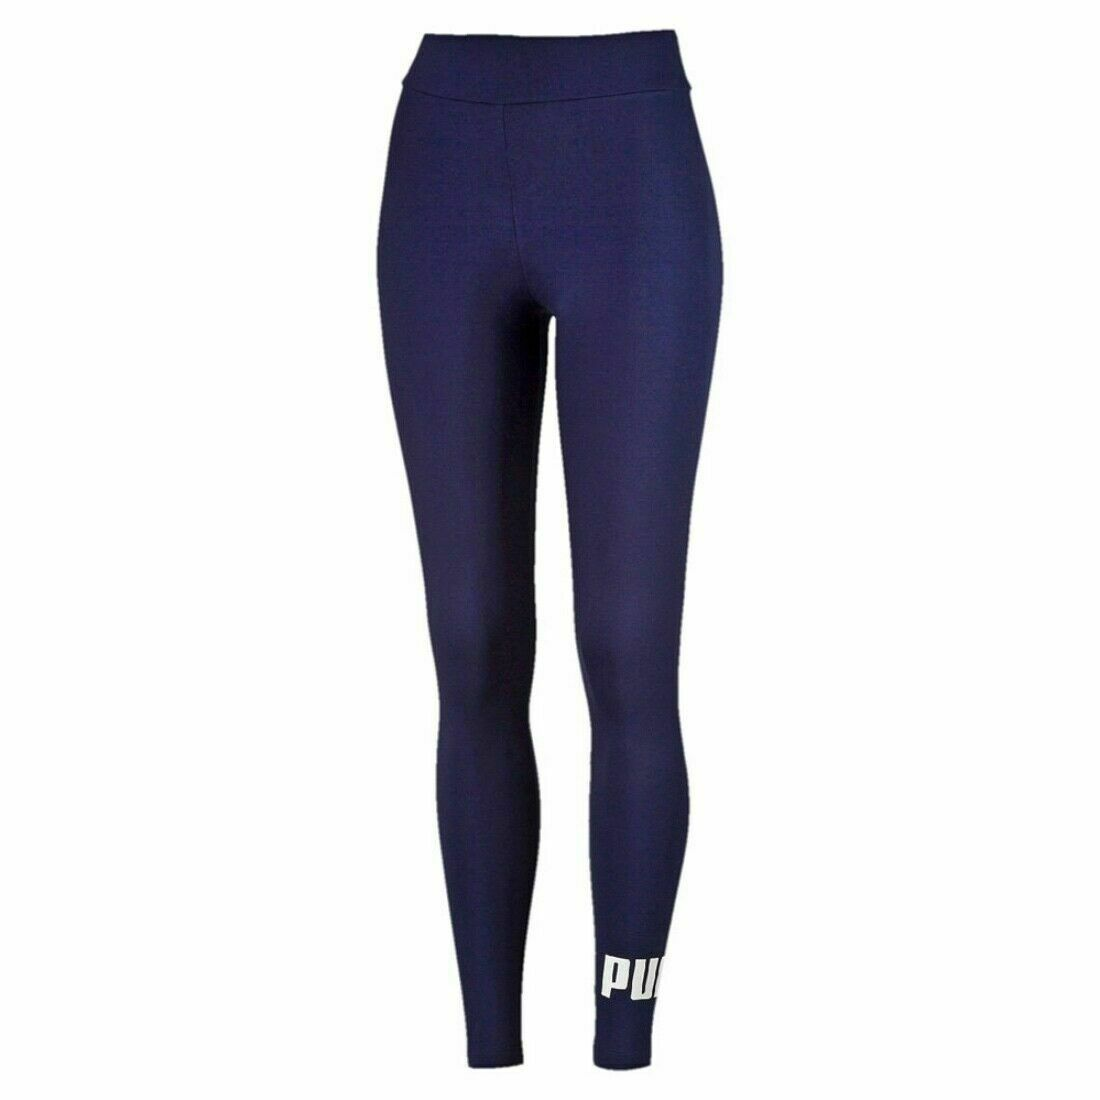 PUMA WOMEN ESS LOGO LEGGINGS - Valley Sports UK